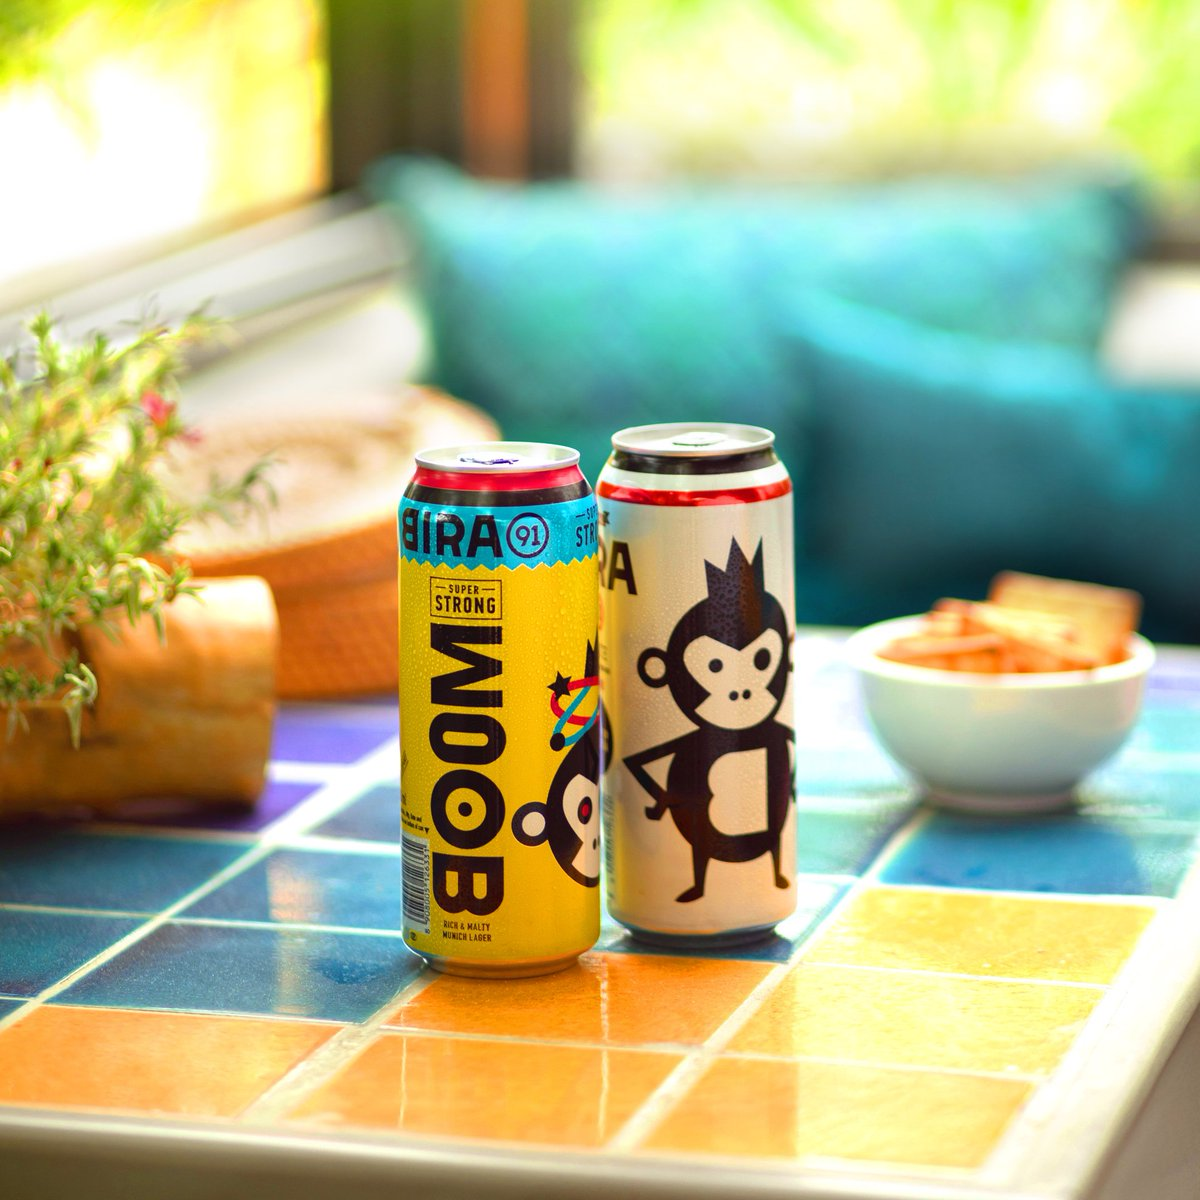 No matter what fancies your taste buds, there's a #Bira91 for it!......#Bira91Beers #Bira91Boom #Bira91White